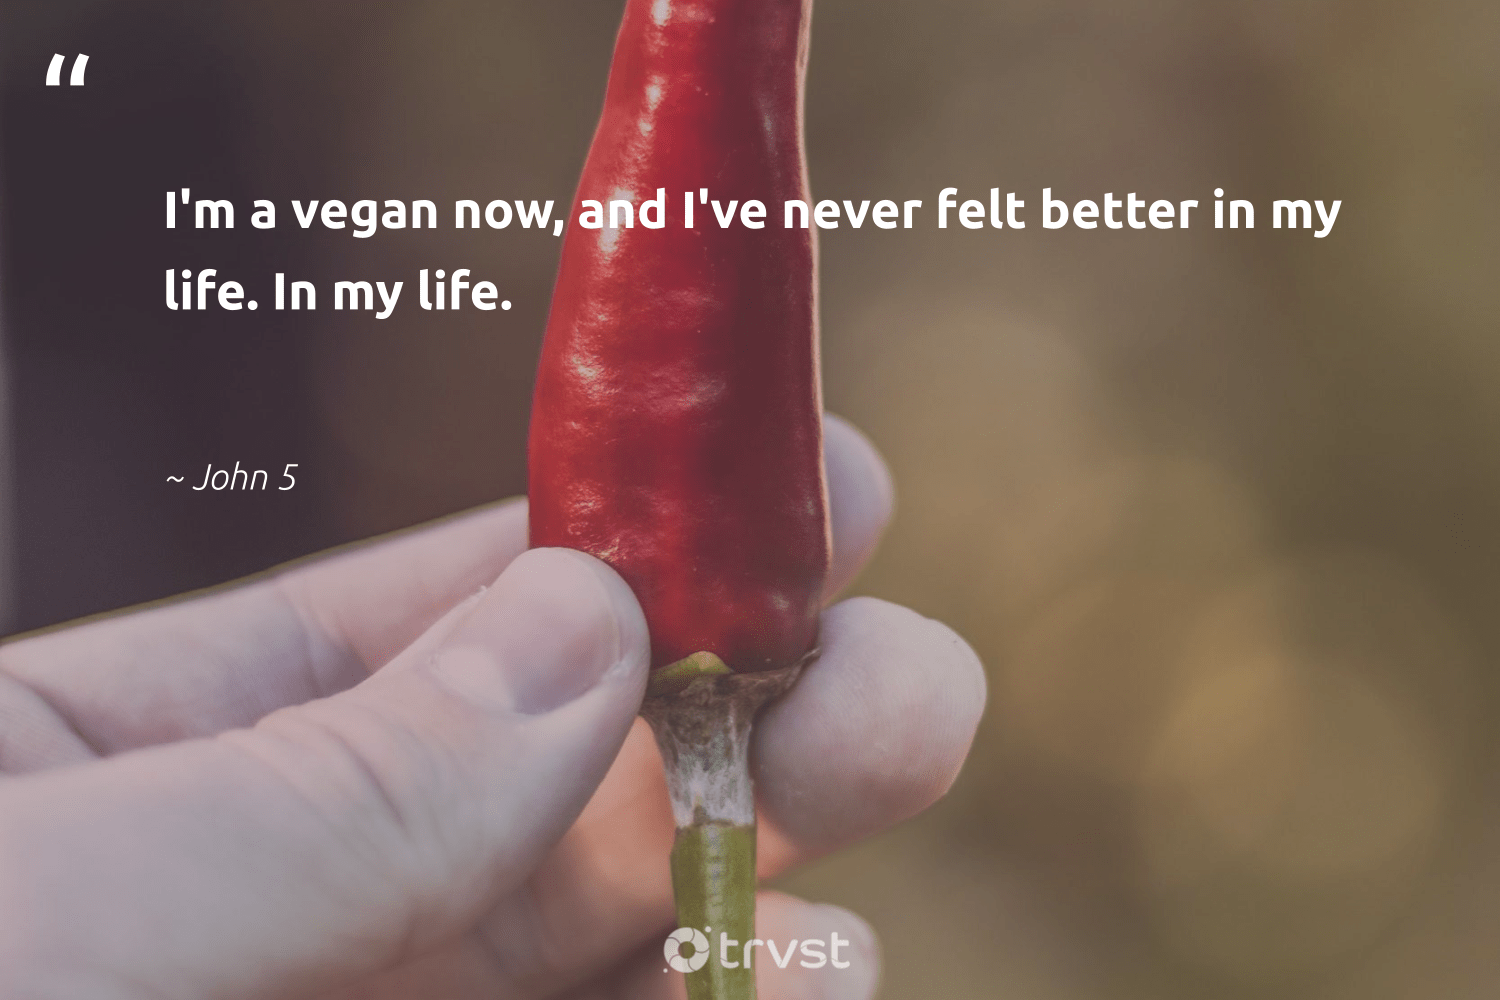 """I'm a vegan now, and I've never felt better in my life. In my life.""  - John 5 #trvst #quotes #vegan #vegetarian #gogreen #sustainable #planetearthfirst #plantbased #greenliving #bethechange #thinkgreen #govegan"